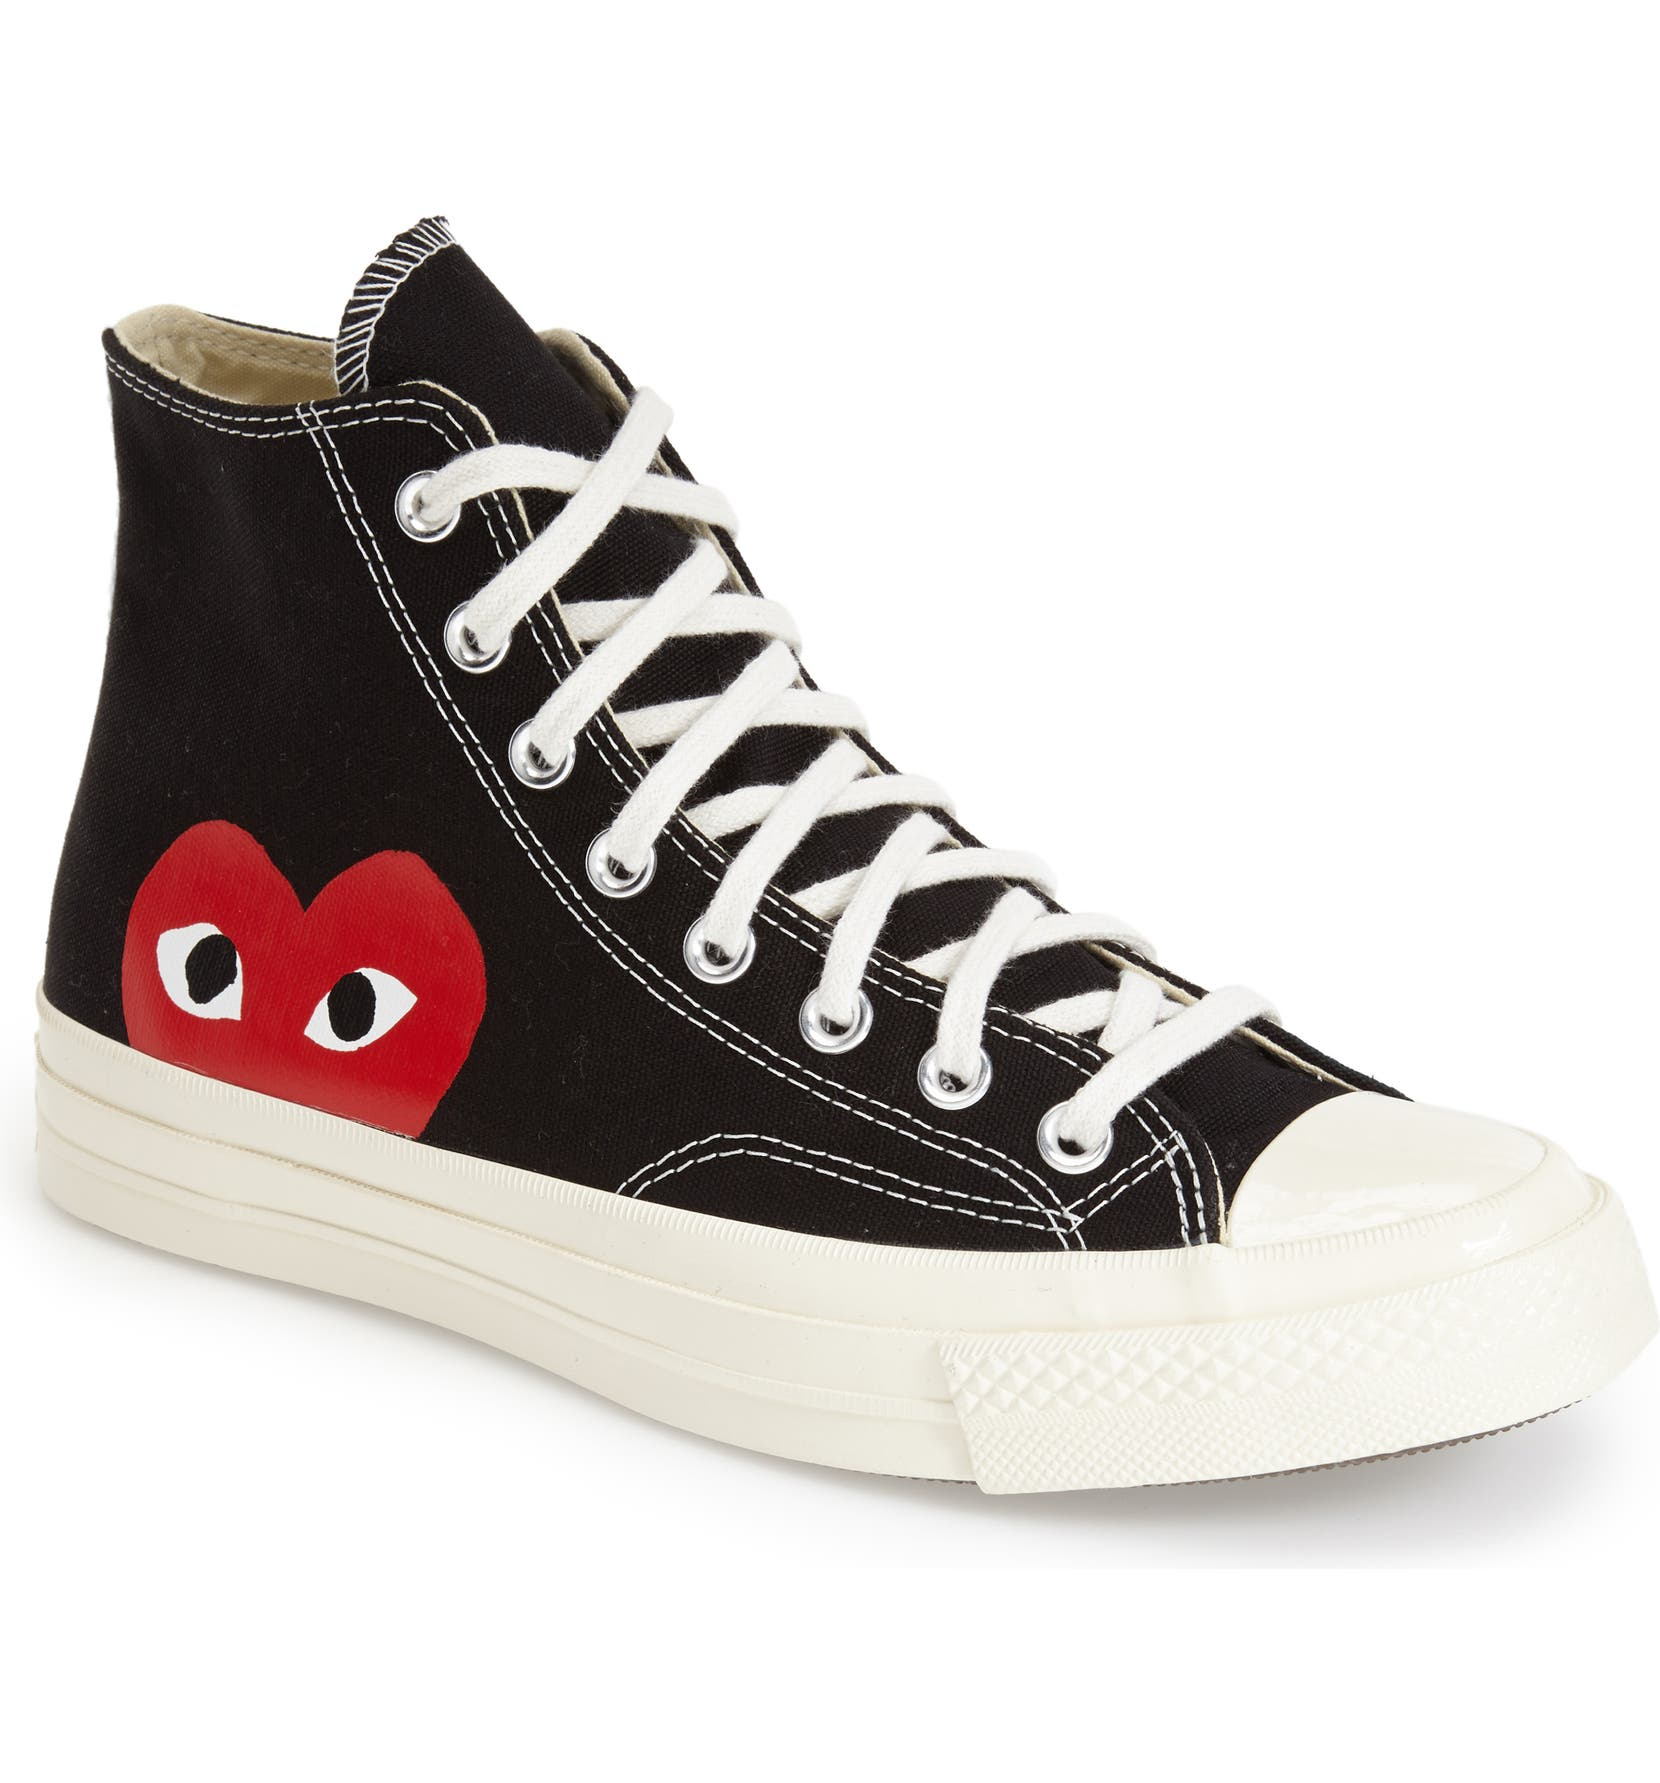 0a178eb1cb5a Comme des Garçons PLAY x Converse Chuck Taylor® Hidden Heart High Top  Sneaker (Men)